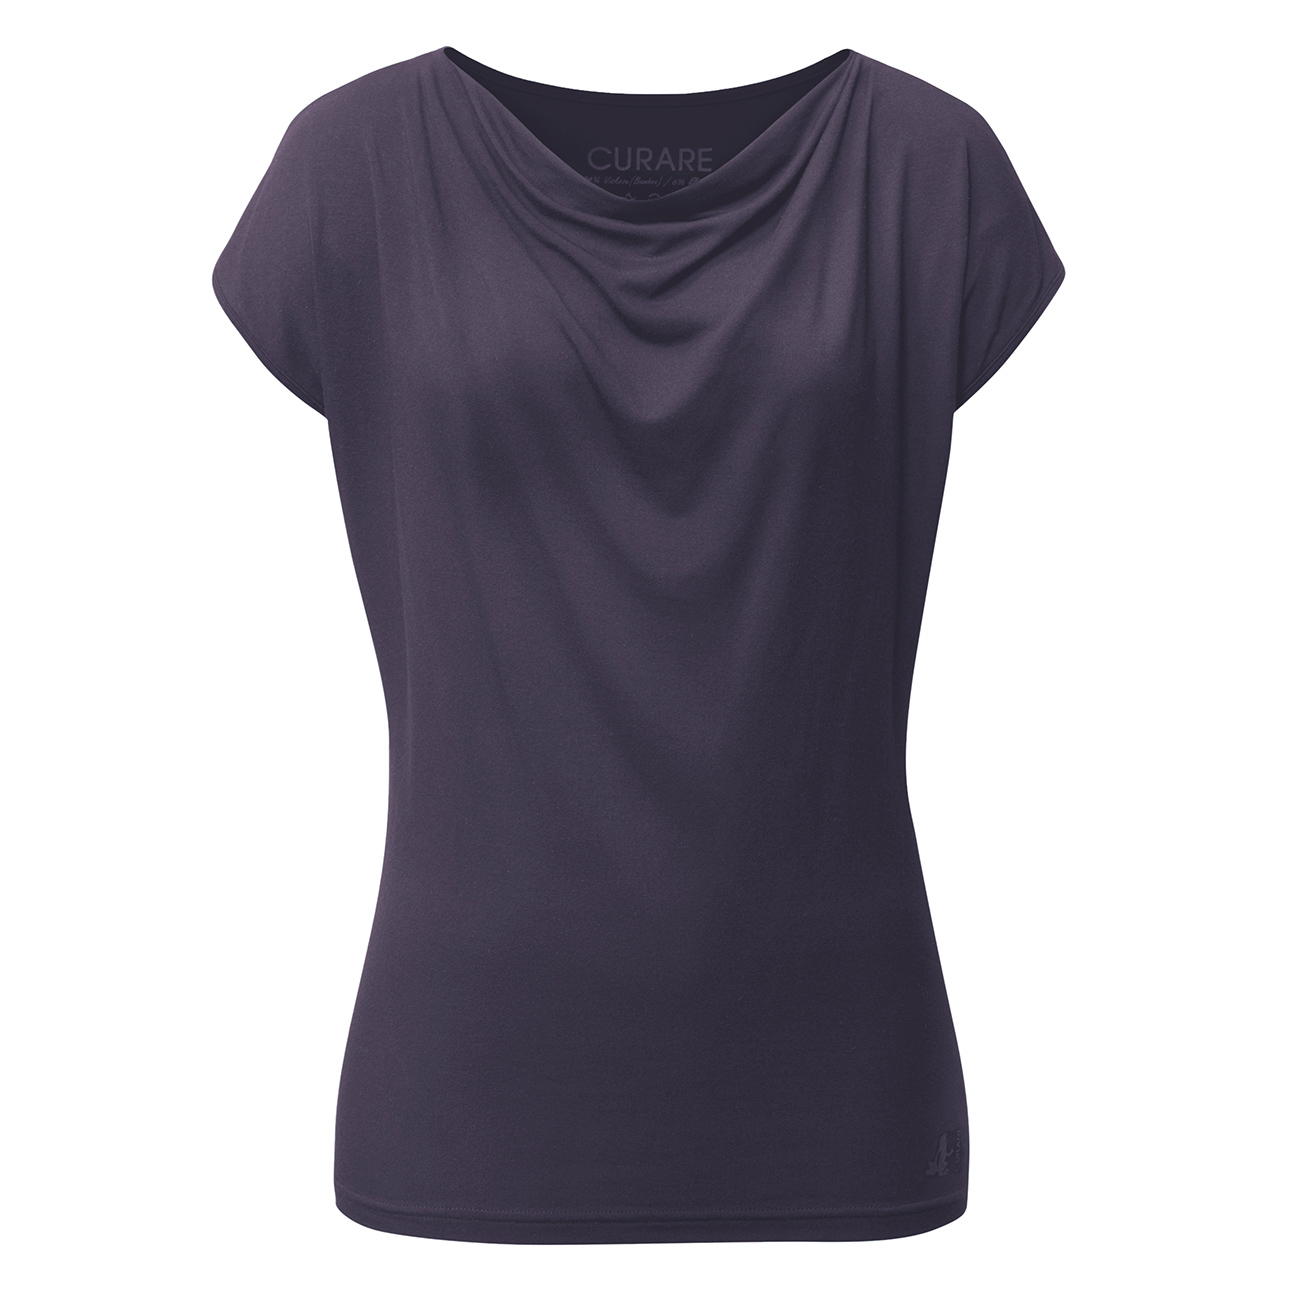 Waterfall Shirt Aubergine T Shirts Shirts And Tops